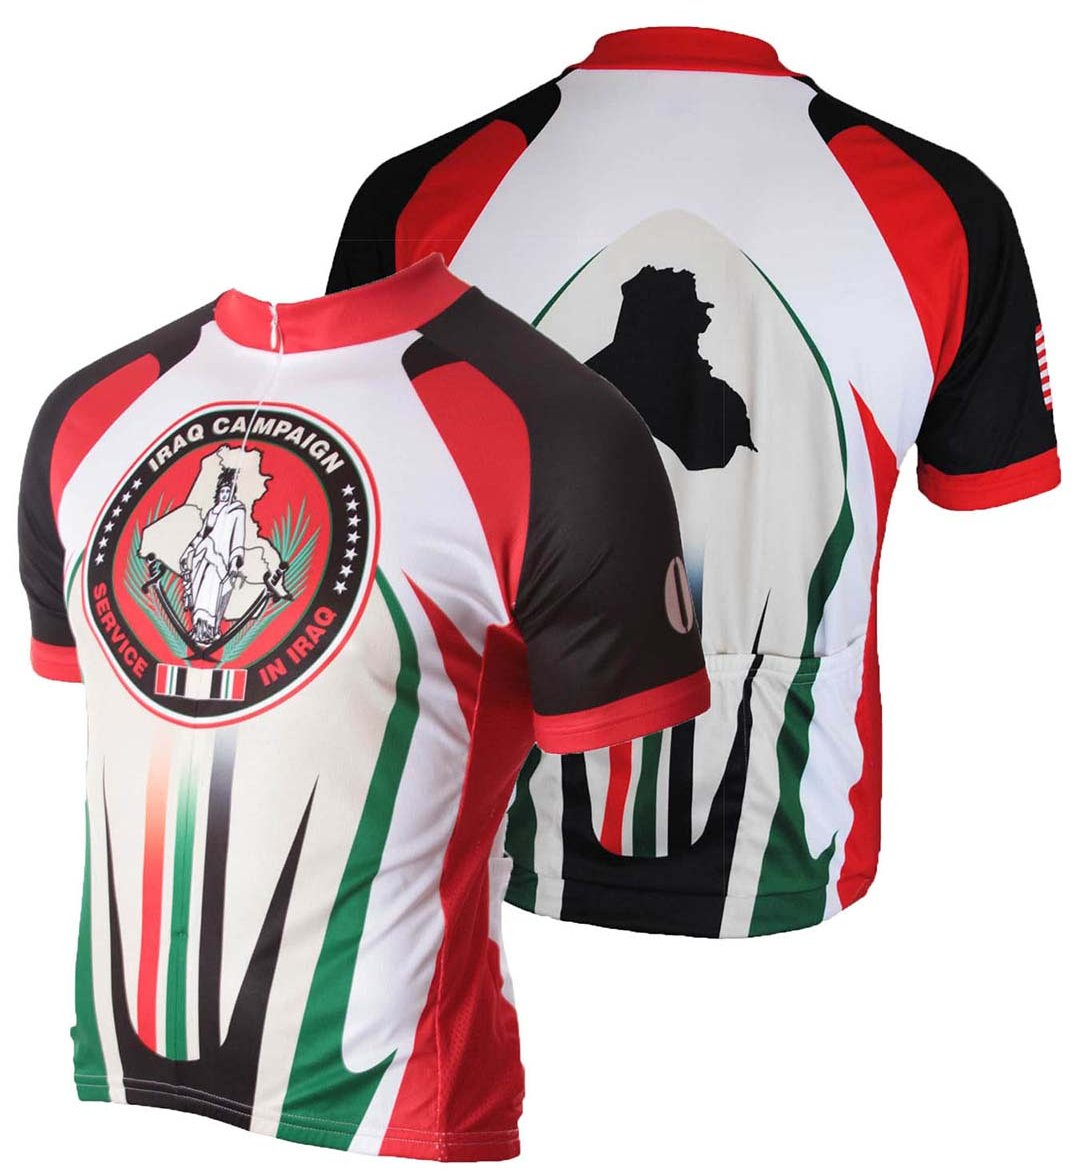 83 Sportswear Iraq OIF Cycling Jersey